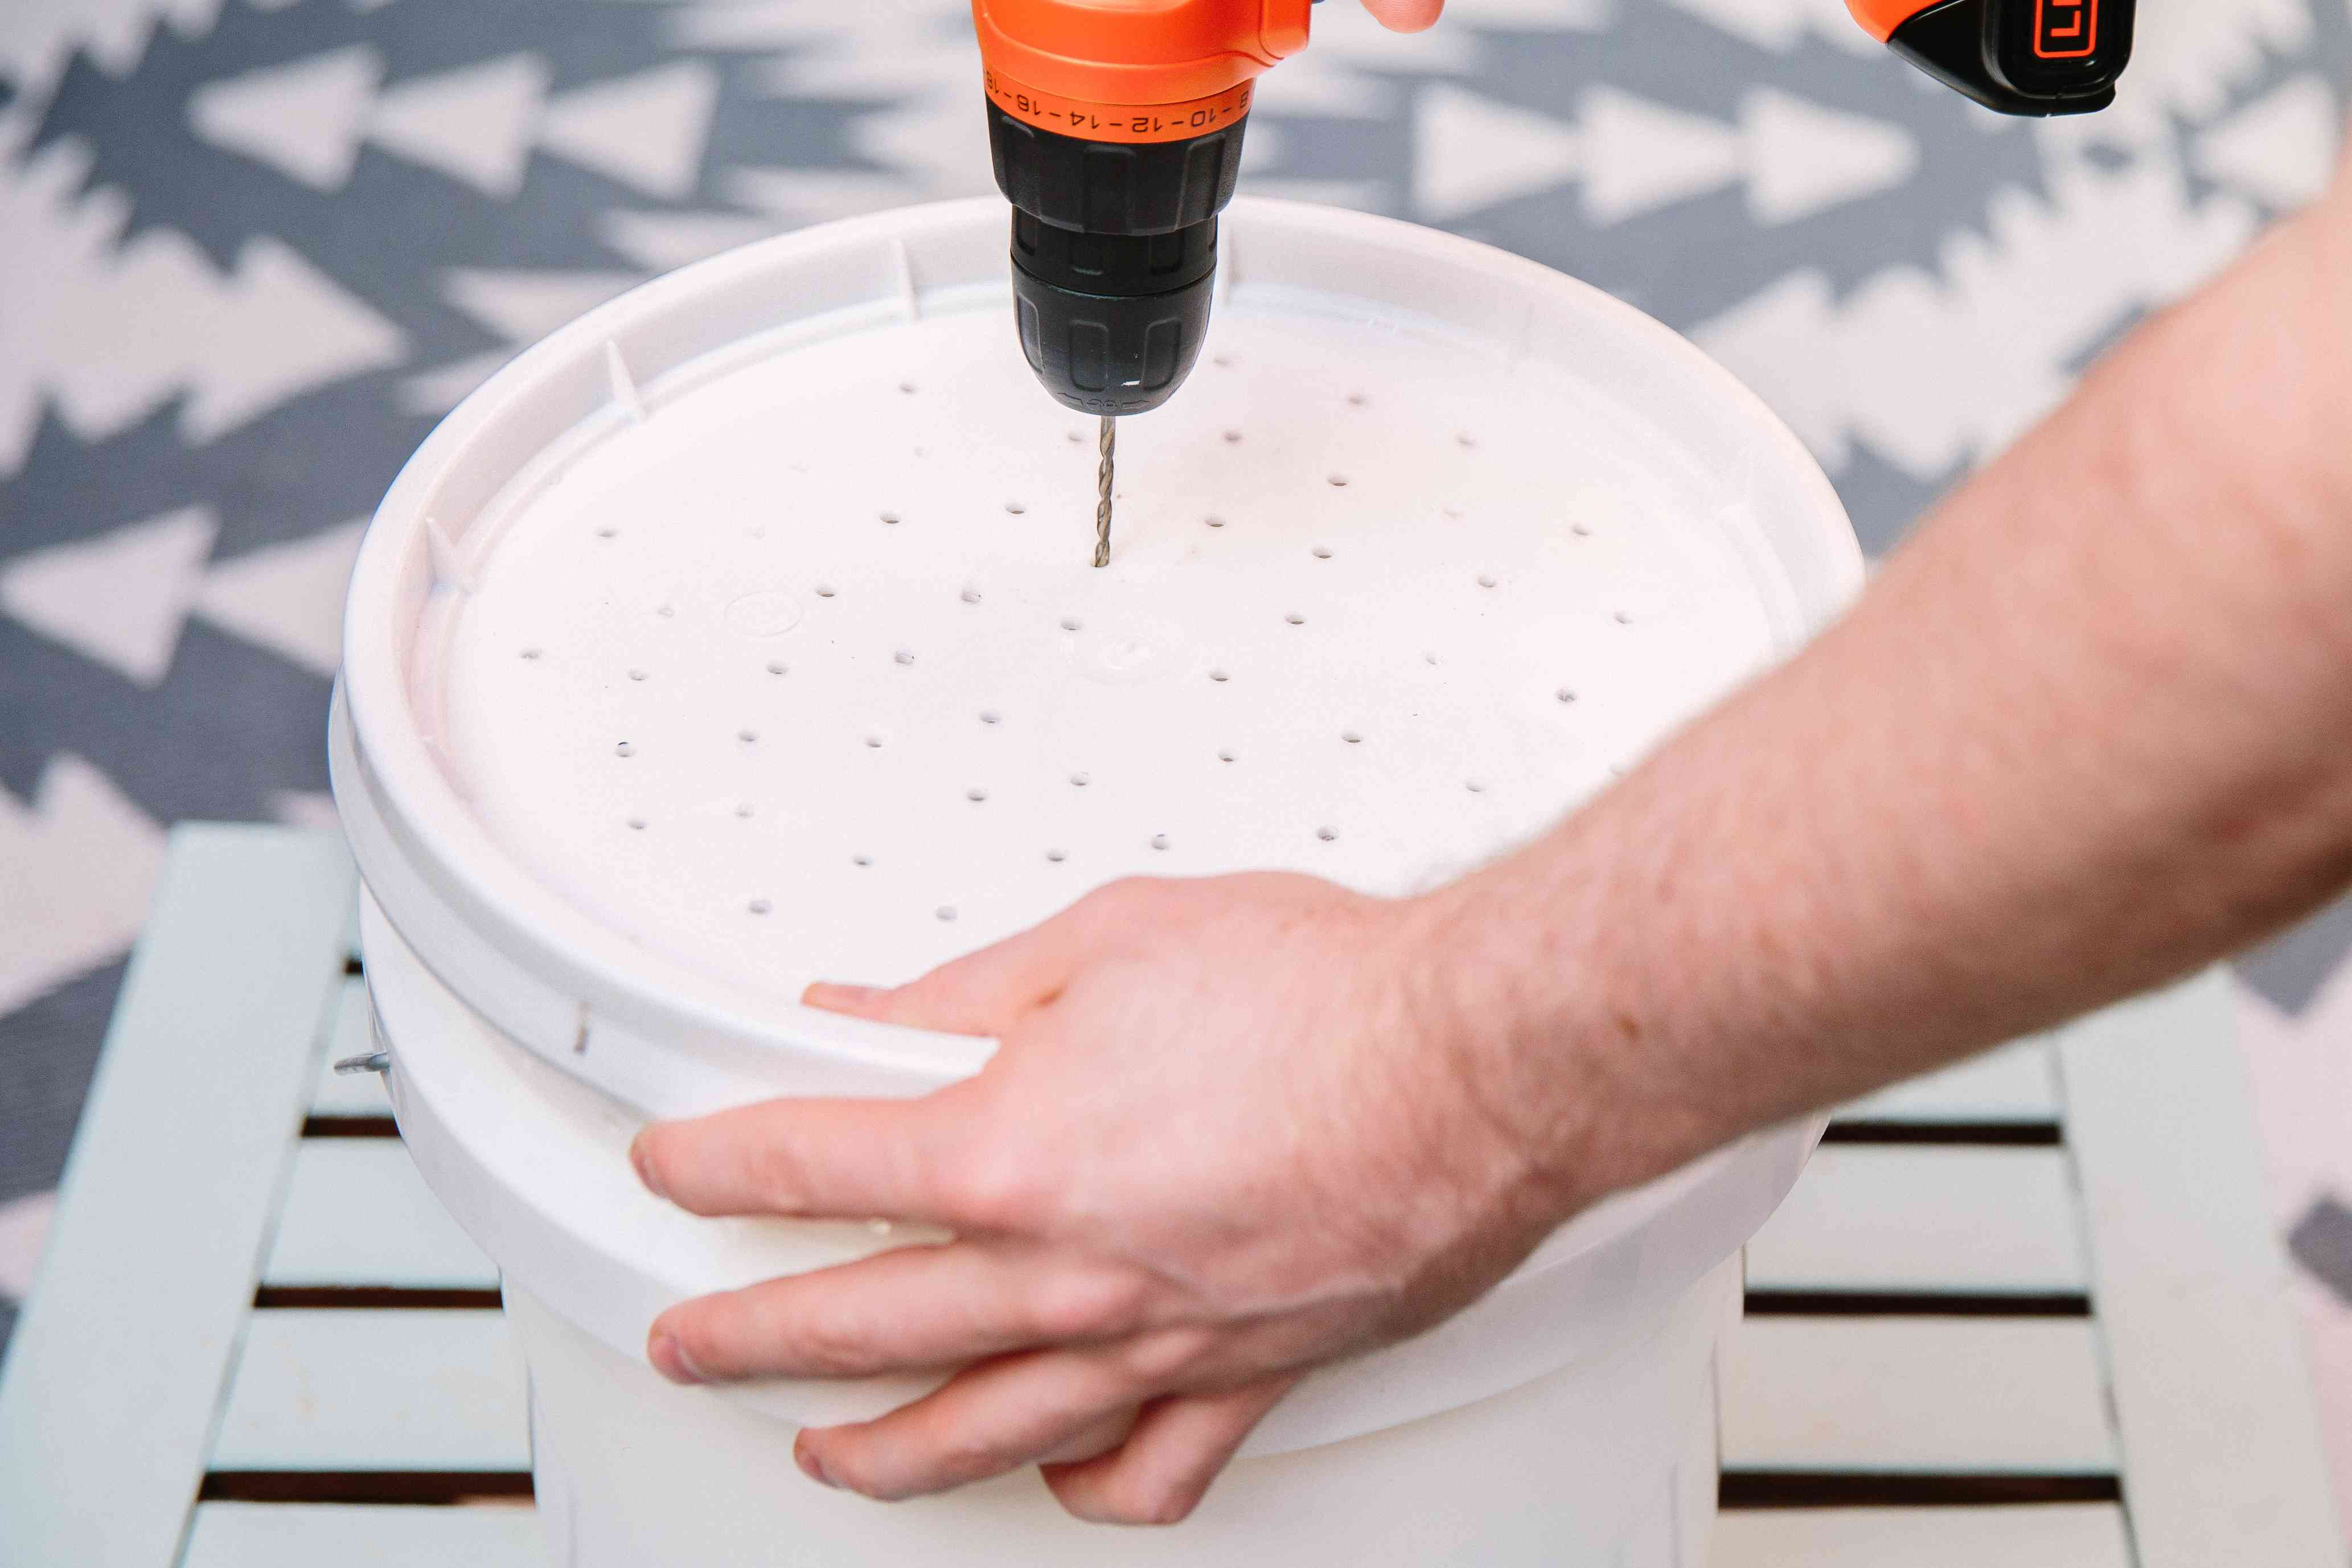 drilling holes in the lid of a bucket